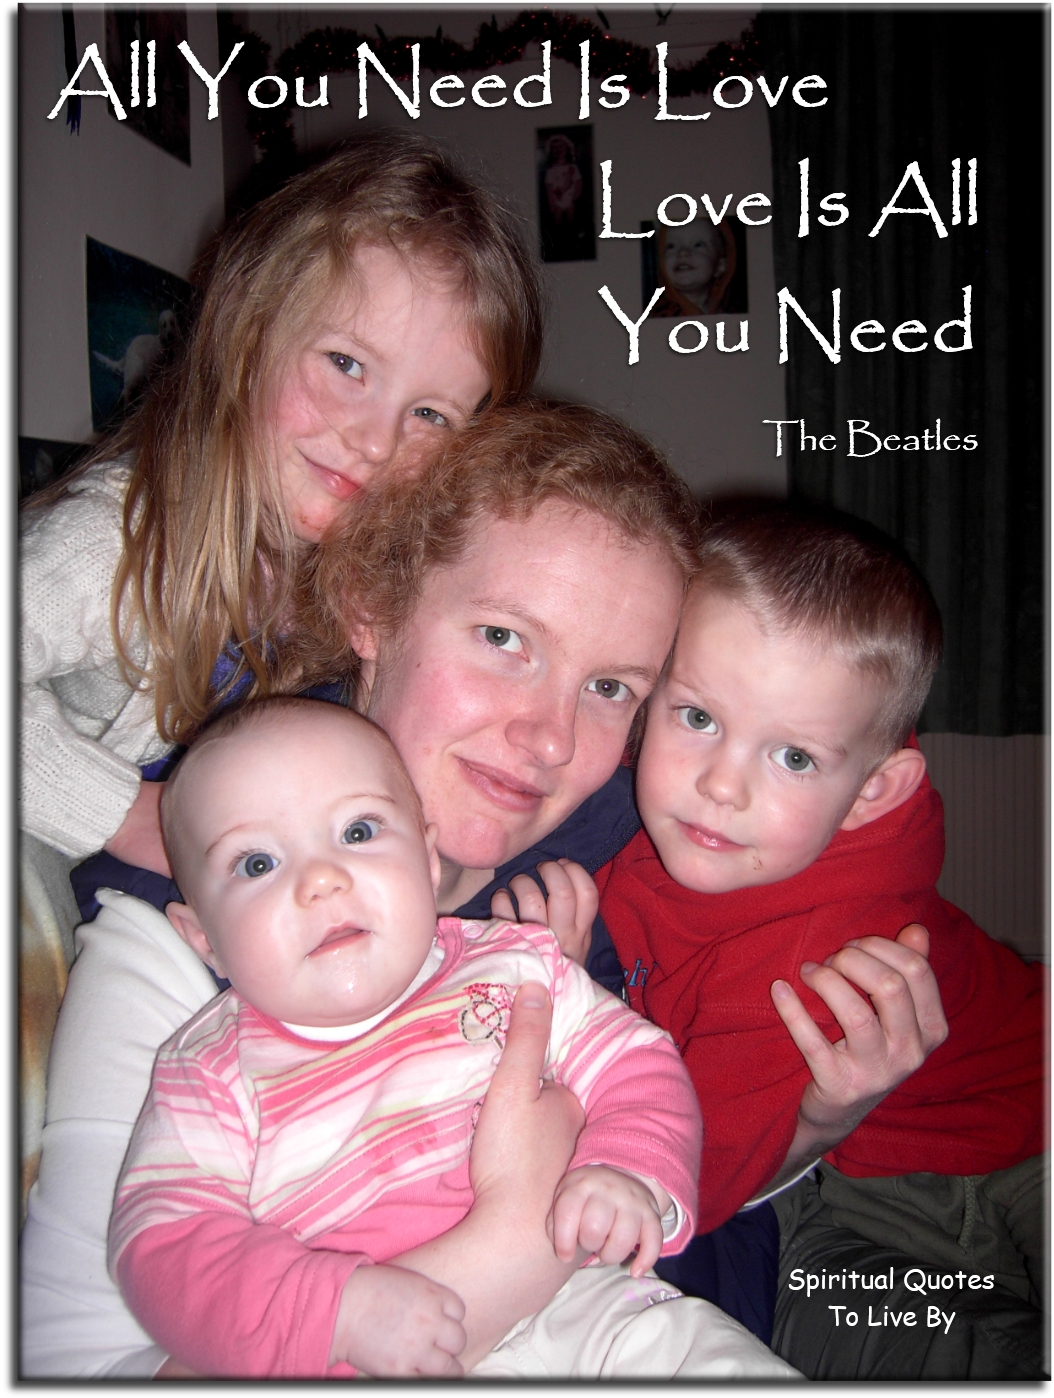 The Beatles quote: All you need is love. Love is all you need. Spiritual Quotes To Live By